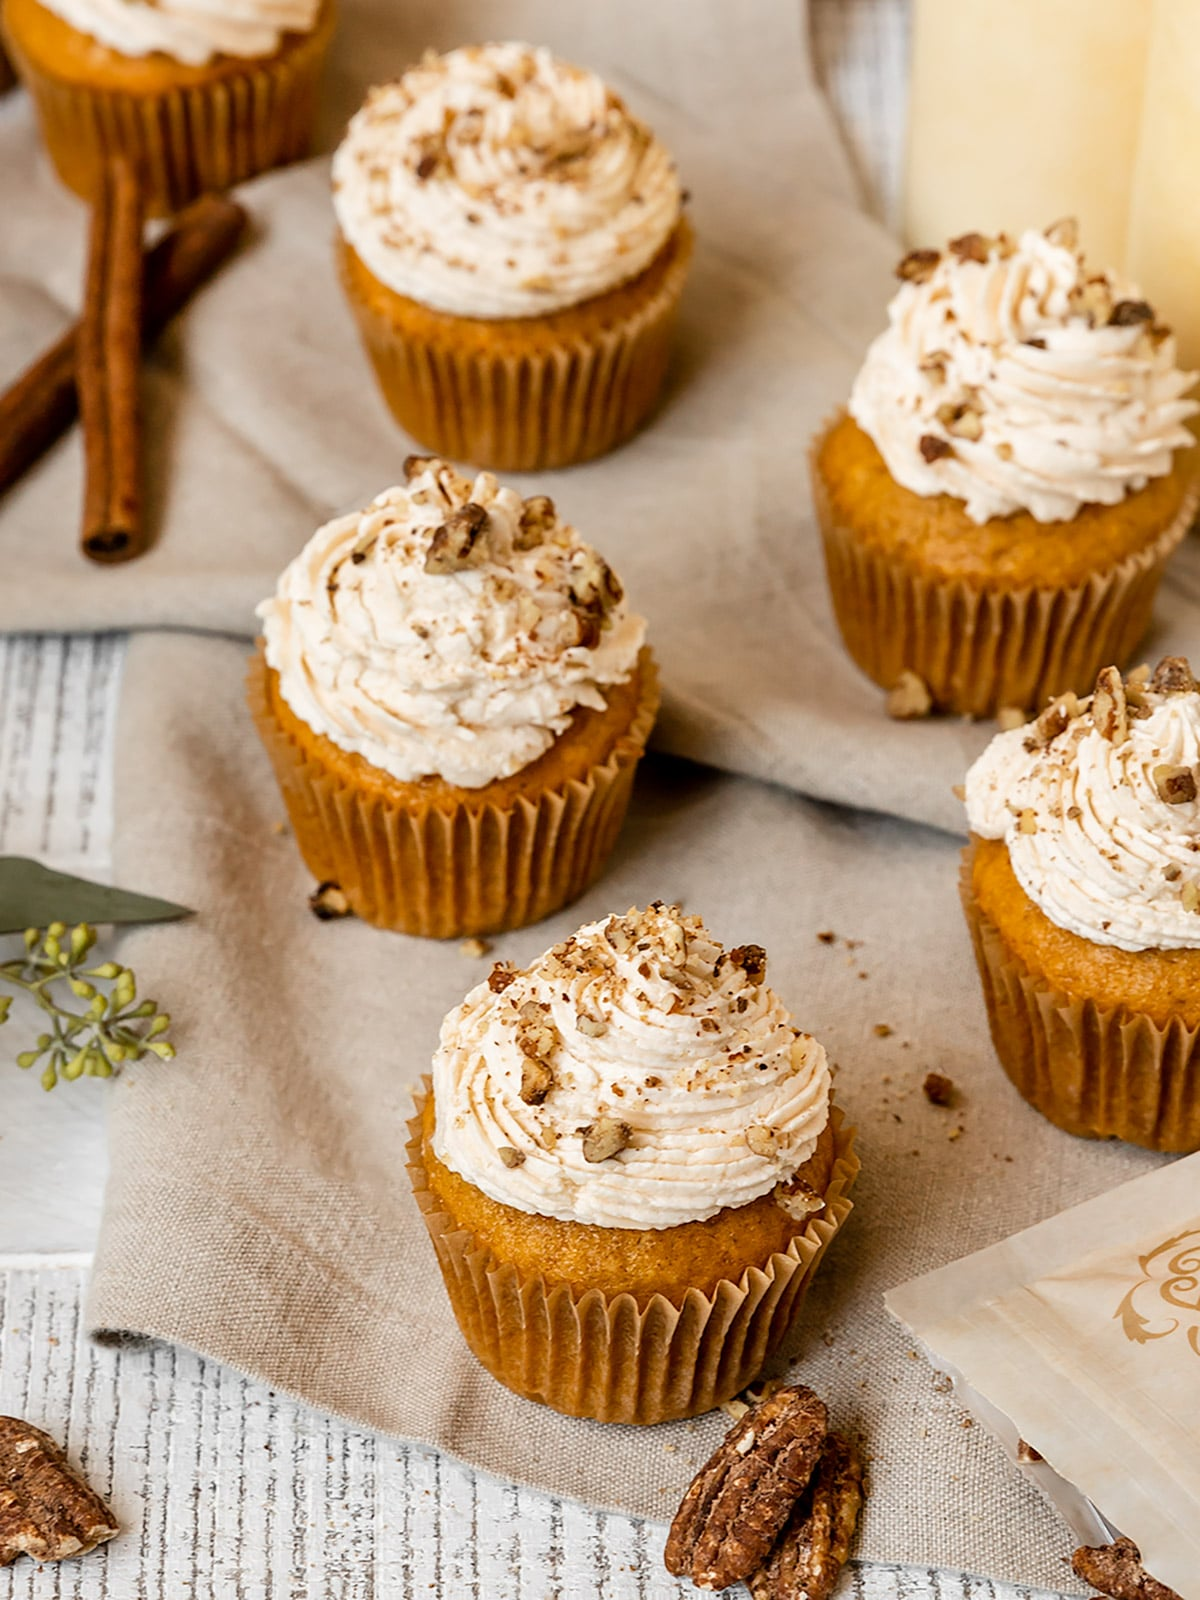 pumpkin cupcakes with frosting and pecan topping surrounded by cinnamon sticks and pecans